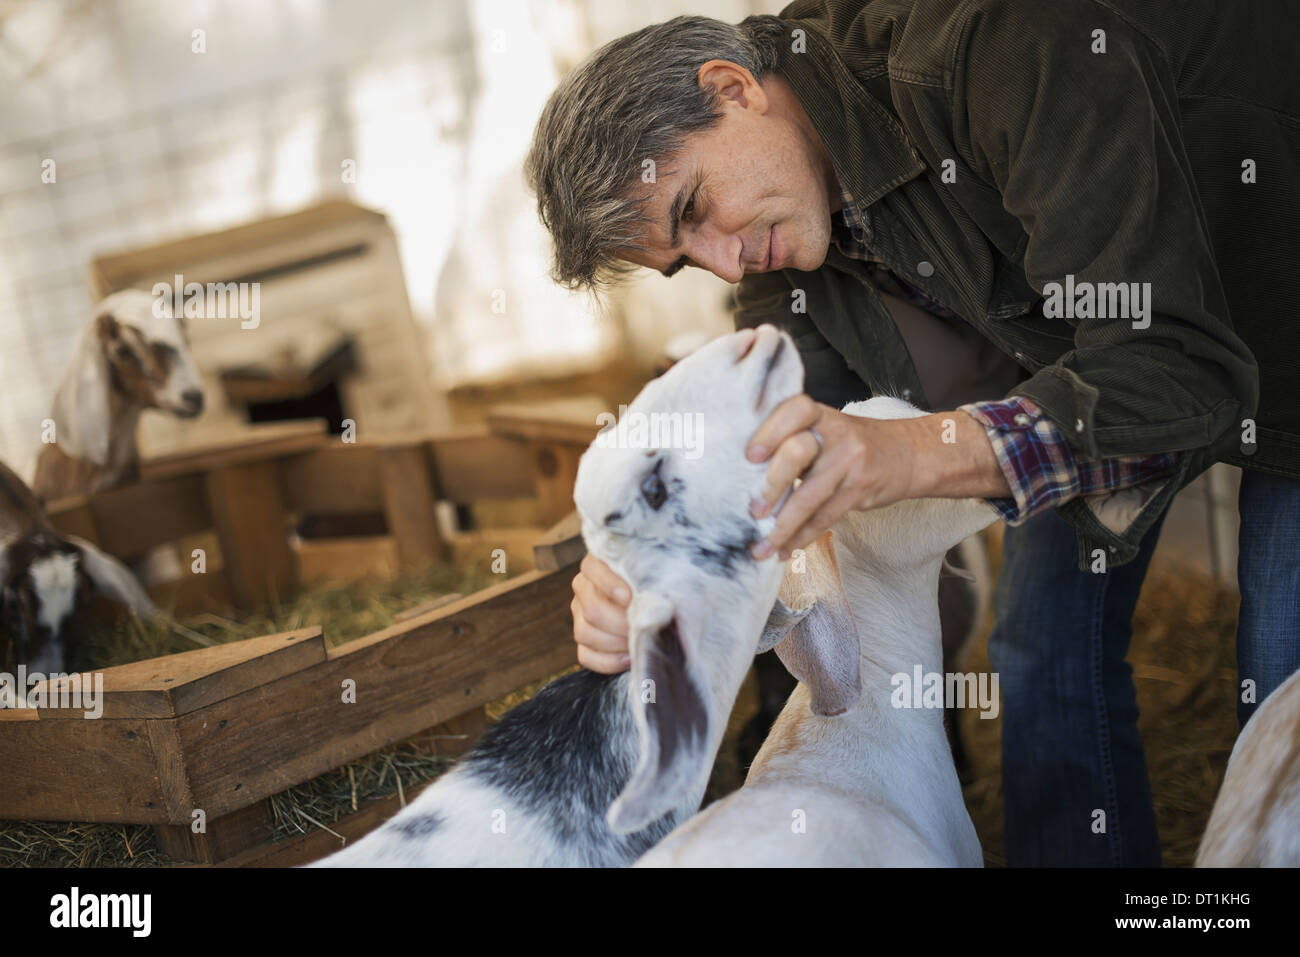 A man in a barn with a flock of goats on an organic dairy farm - Stock Image